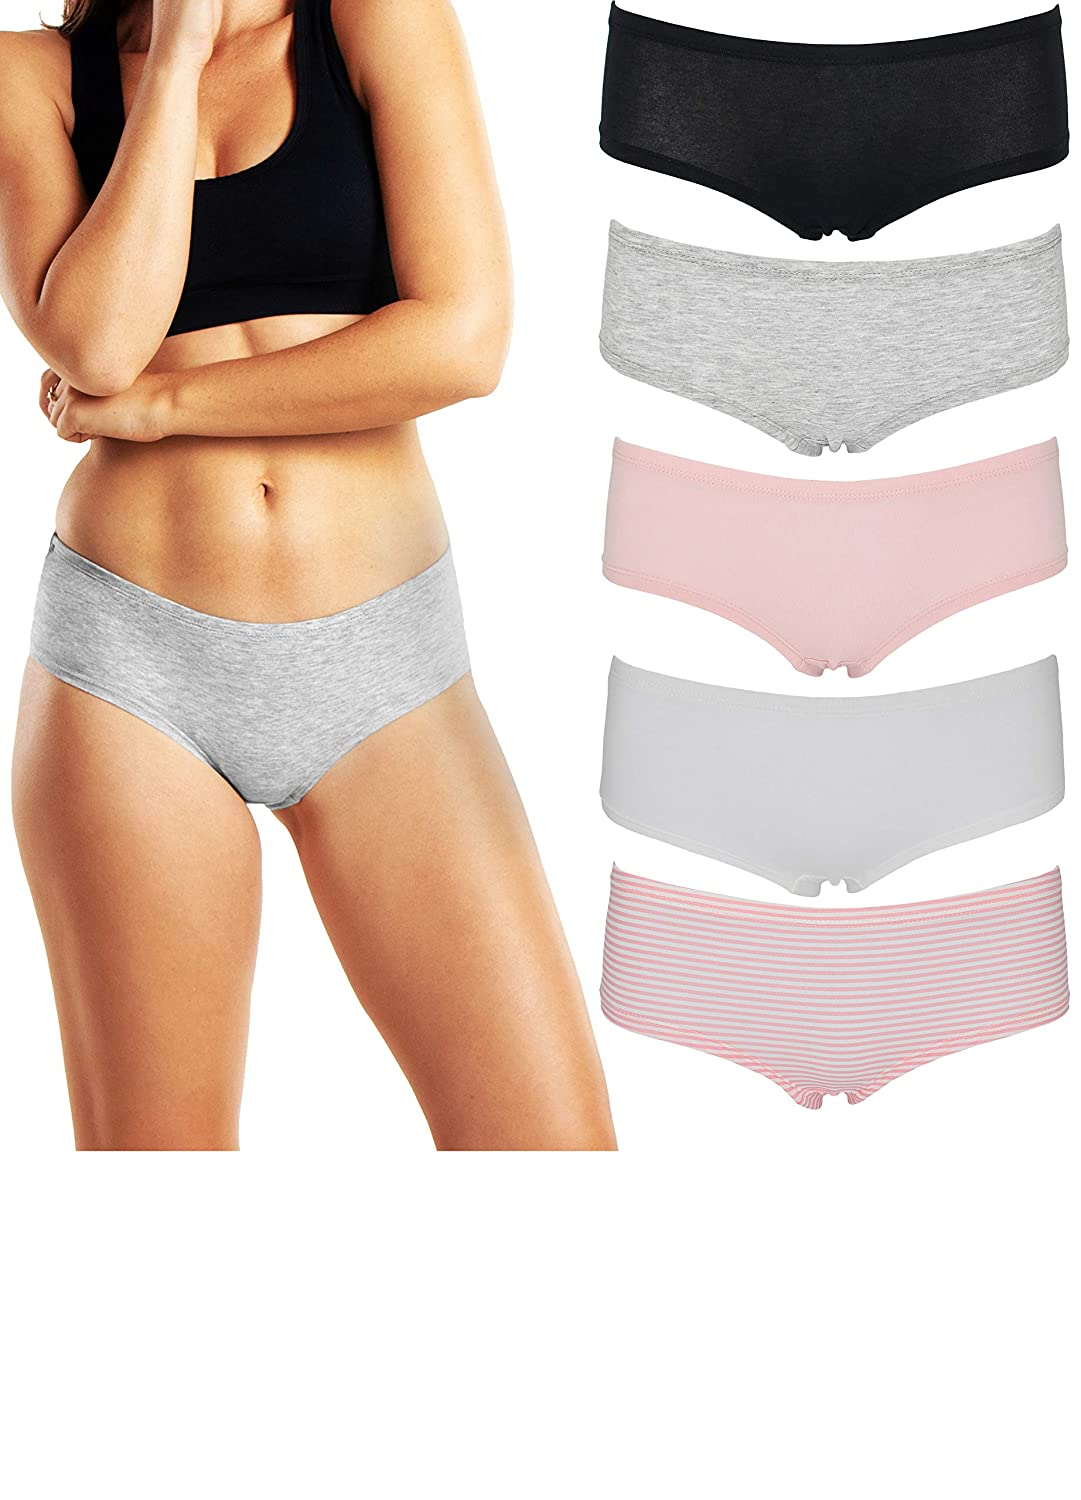 new lifestyle marketable choose authentic Boy Shorts Underwear for Women, (5 Pack) of Soft Cotton Panties Ladies Love